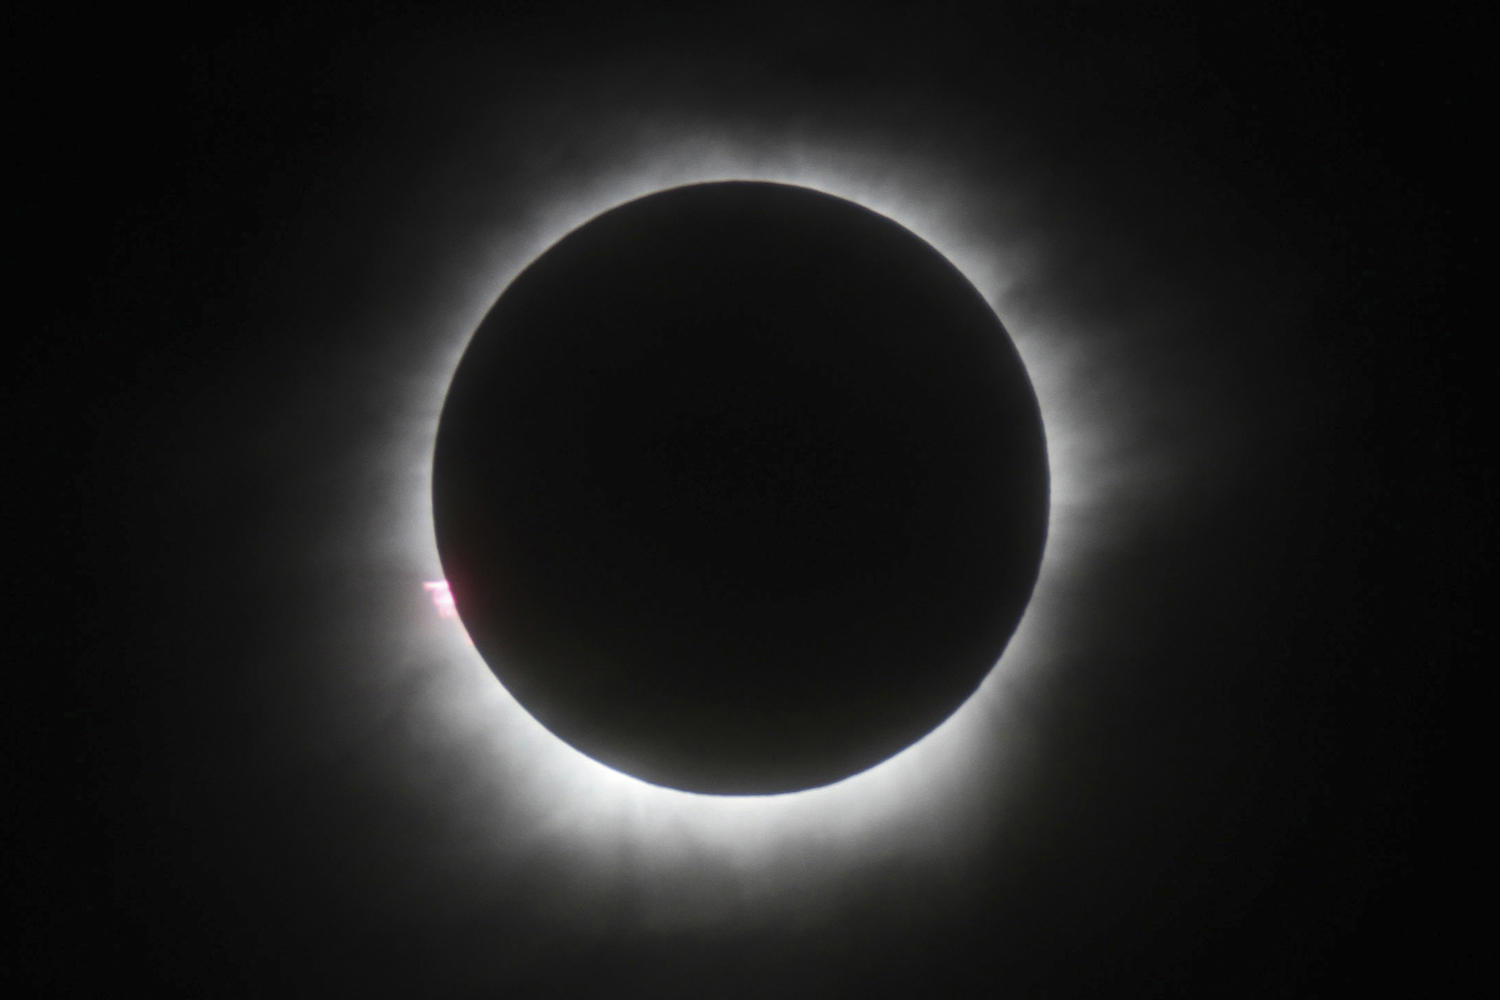 Monday's eclipse offers unique opportunity to view phenomenon